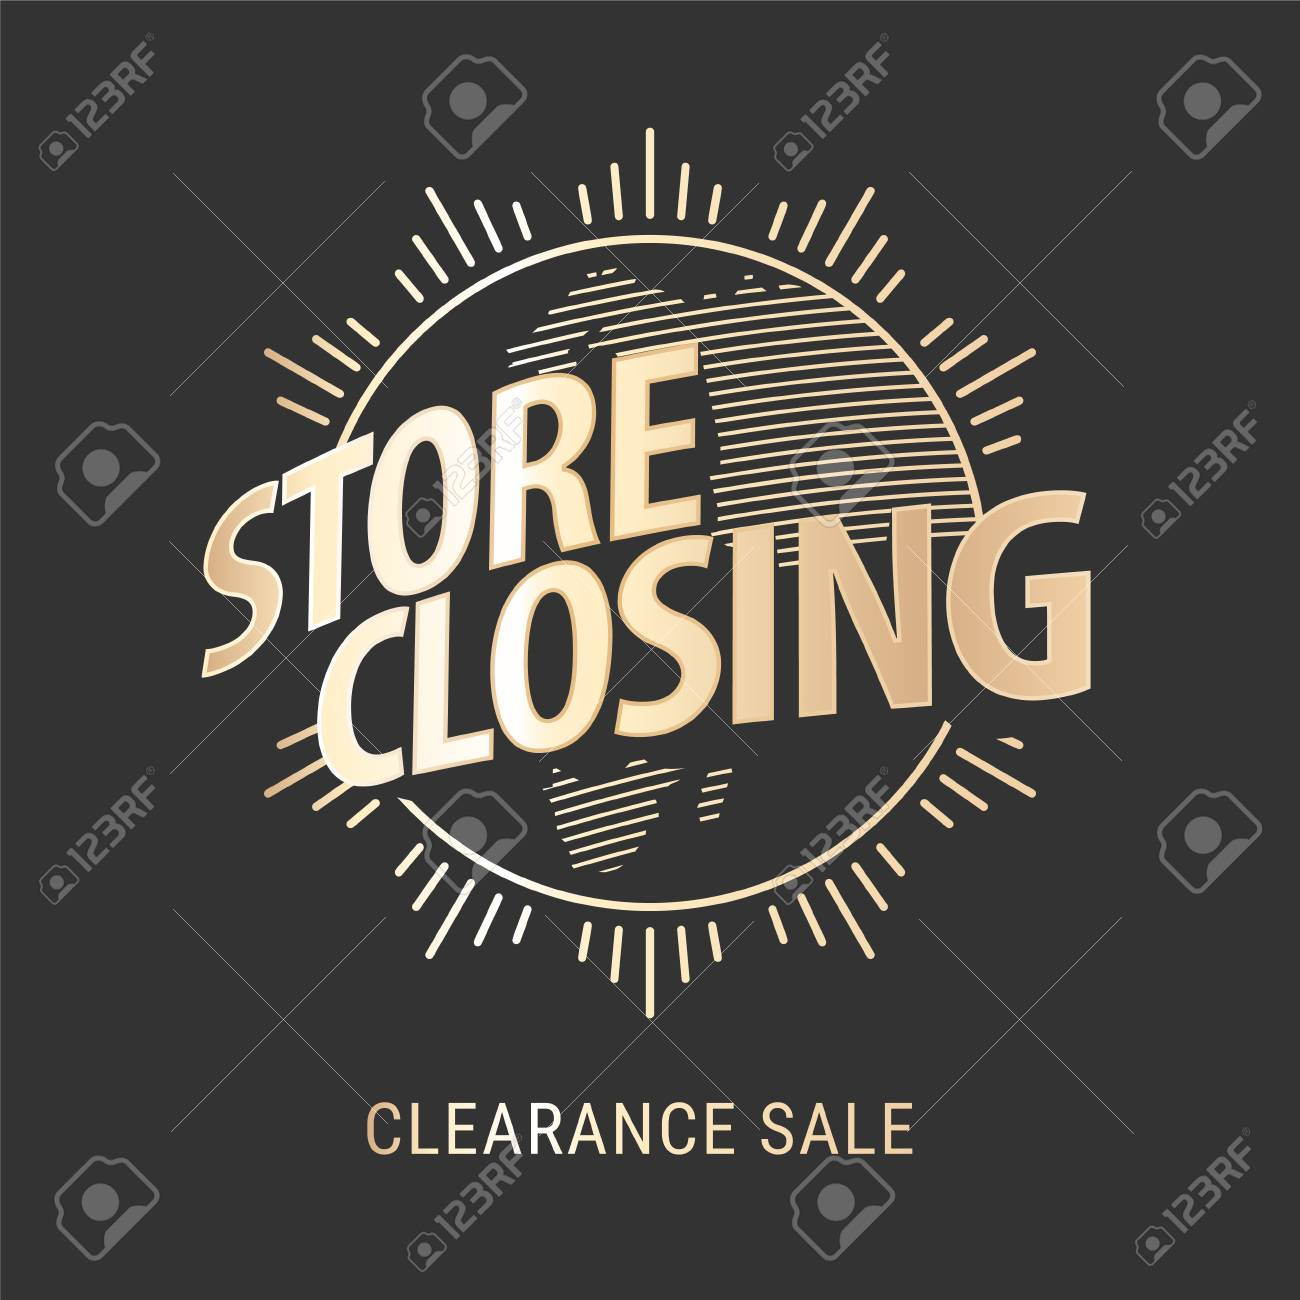 store closing vector illustration background with golden sign